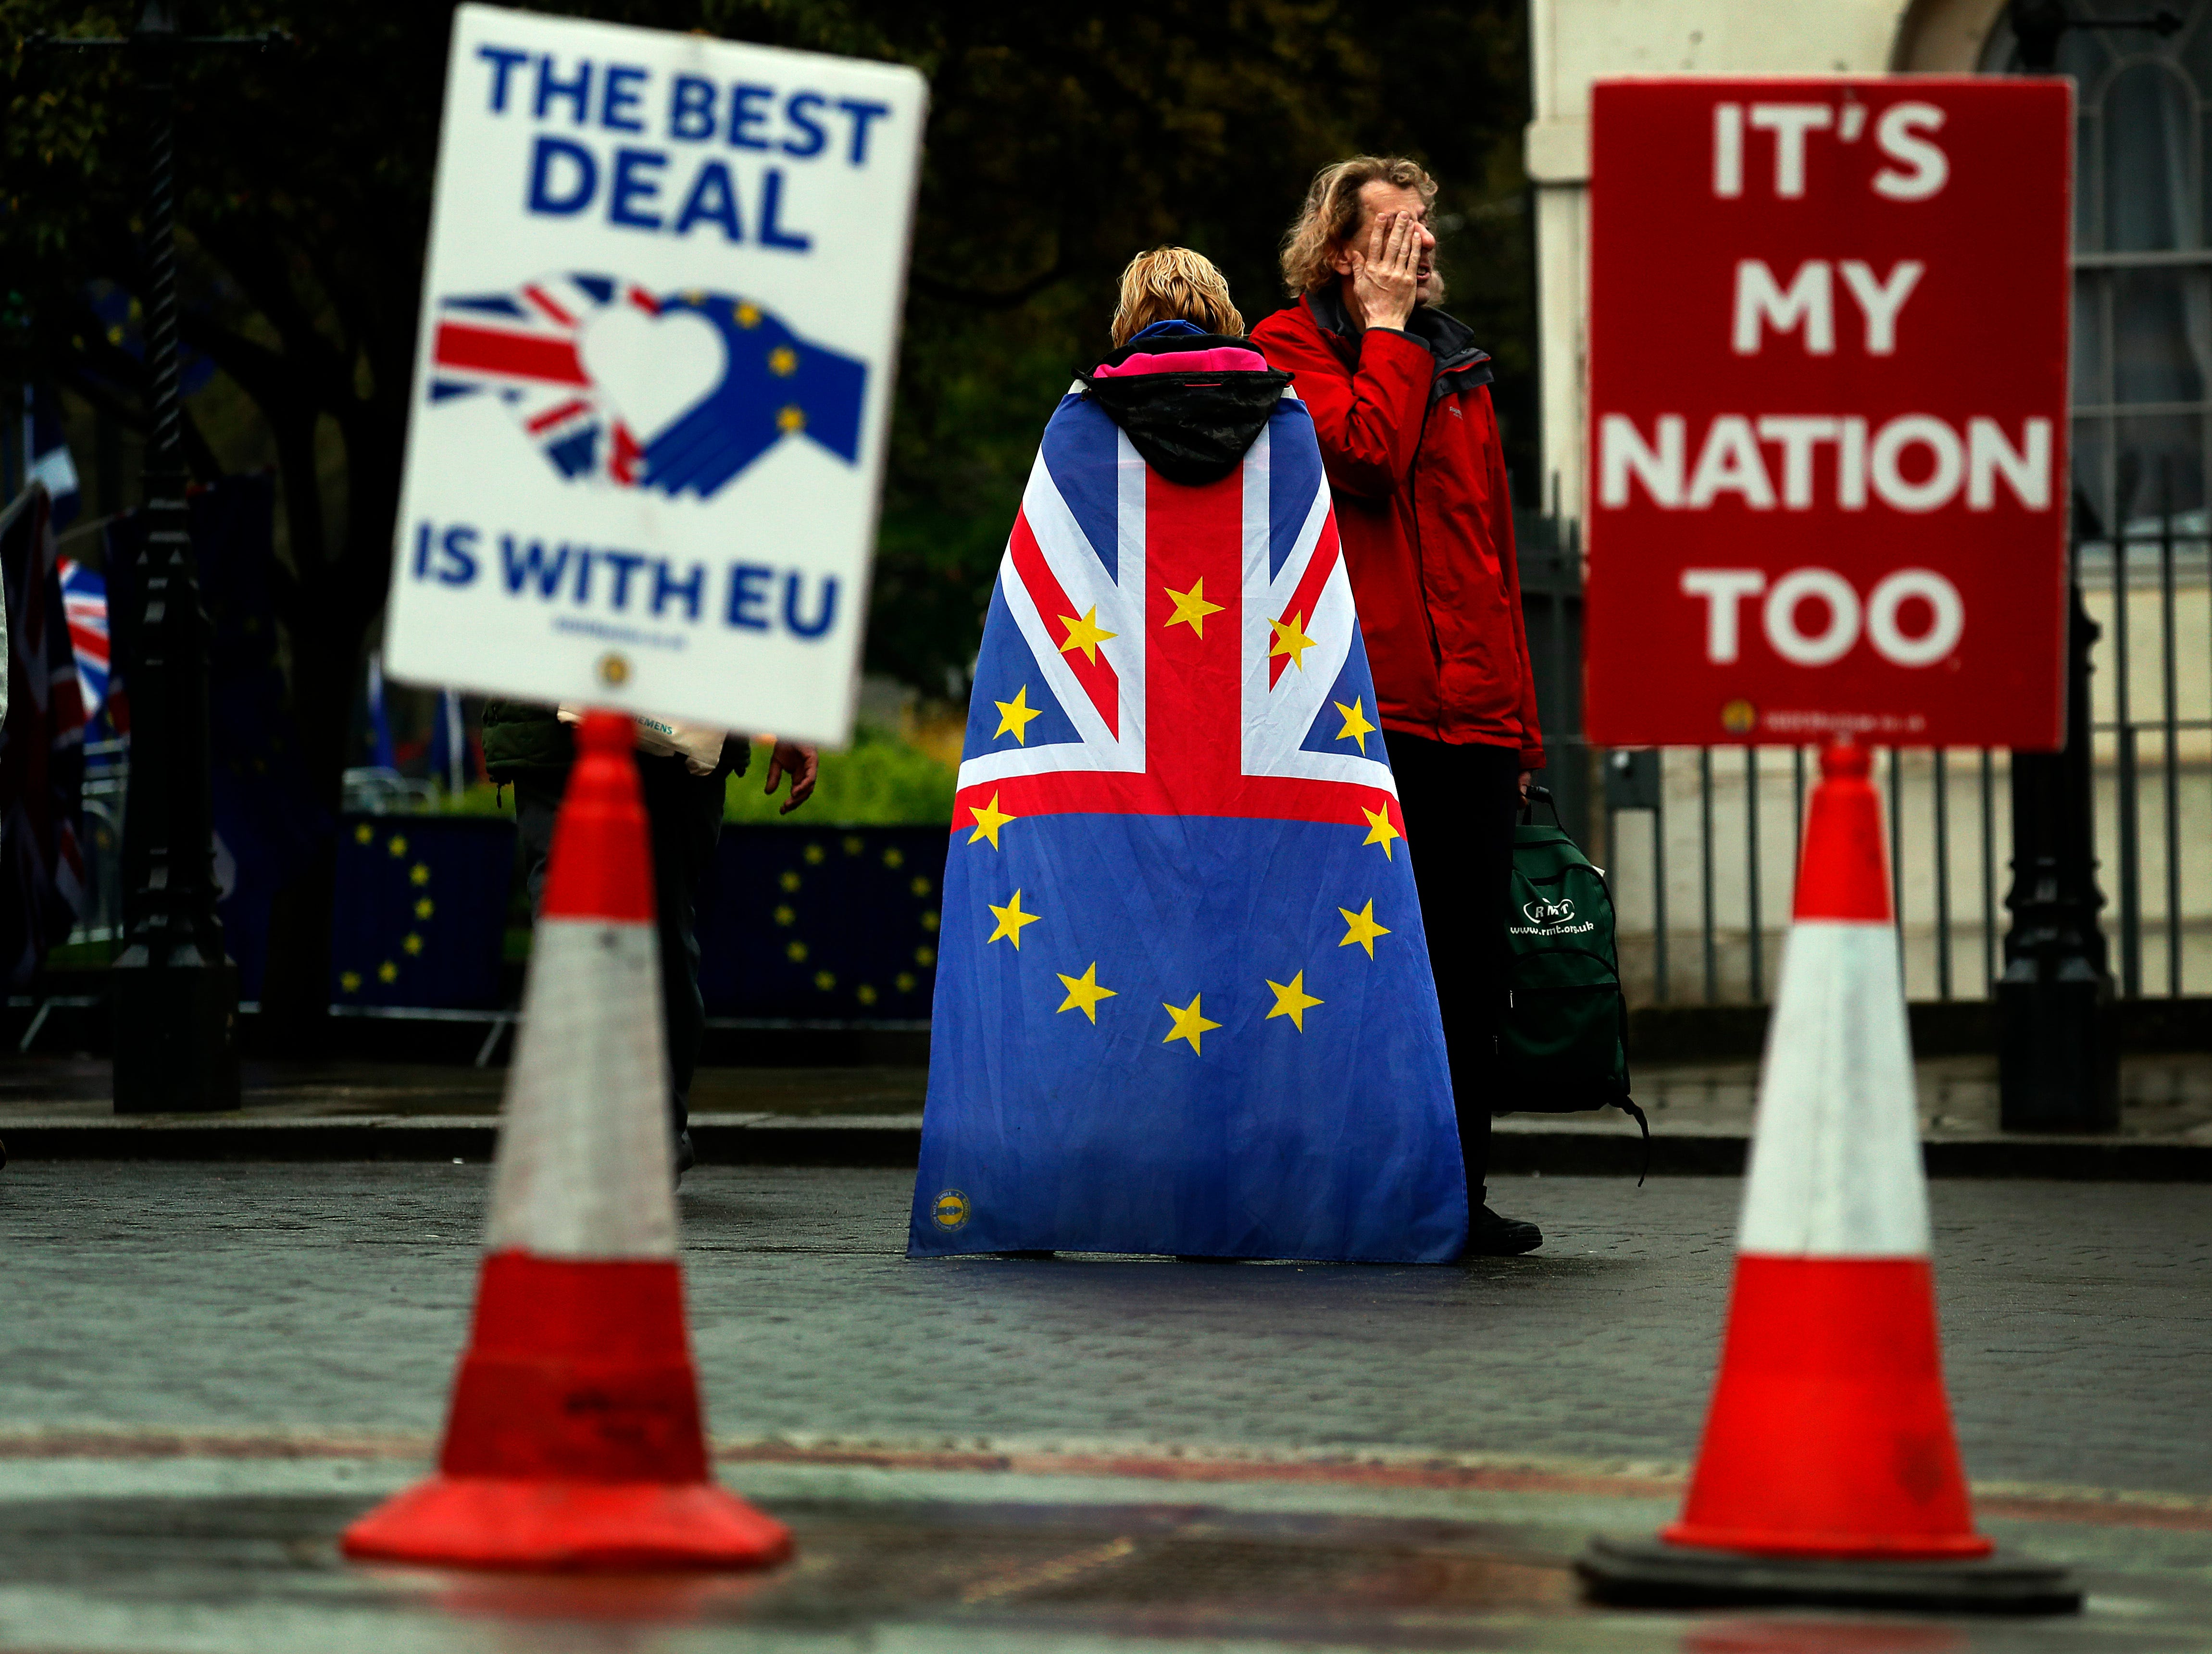 People opposed to Brexit demonstrate opposite the Houses of Parliament in London, Monday, April 8, 2019. Britain's Prime Minister Theresa May will hold talks with the leaders of Germany and France ahead of a key Brexit summit later this week.